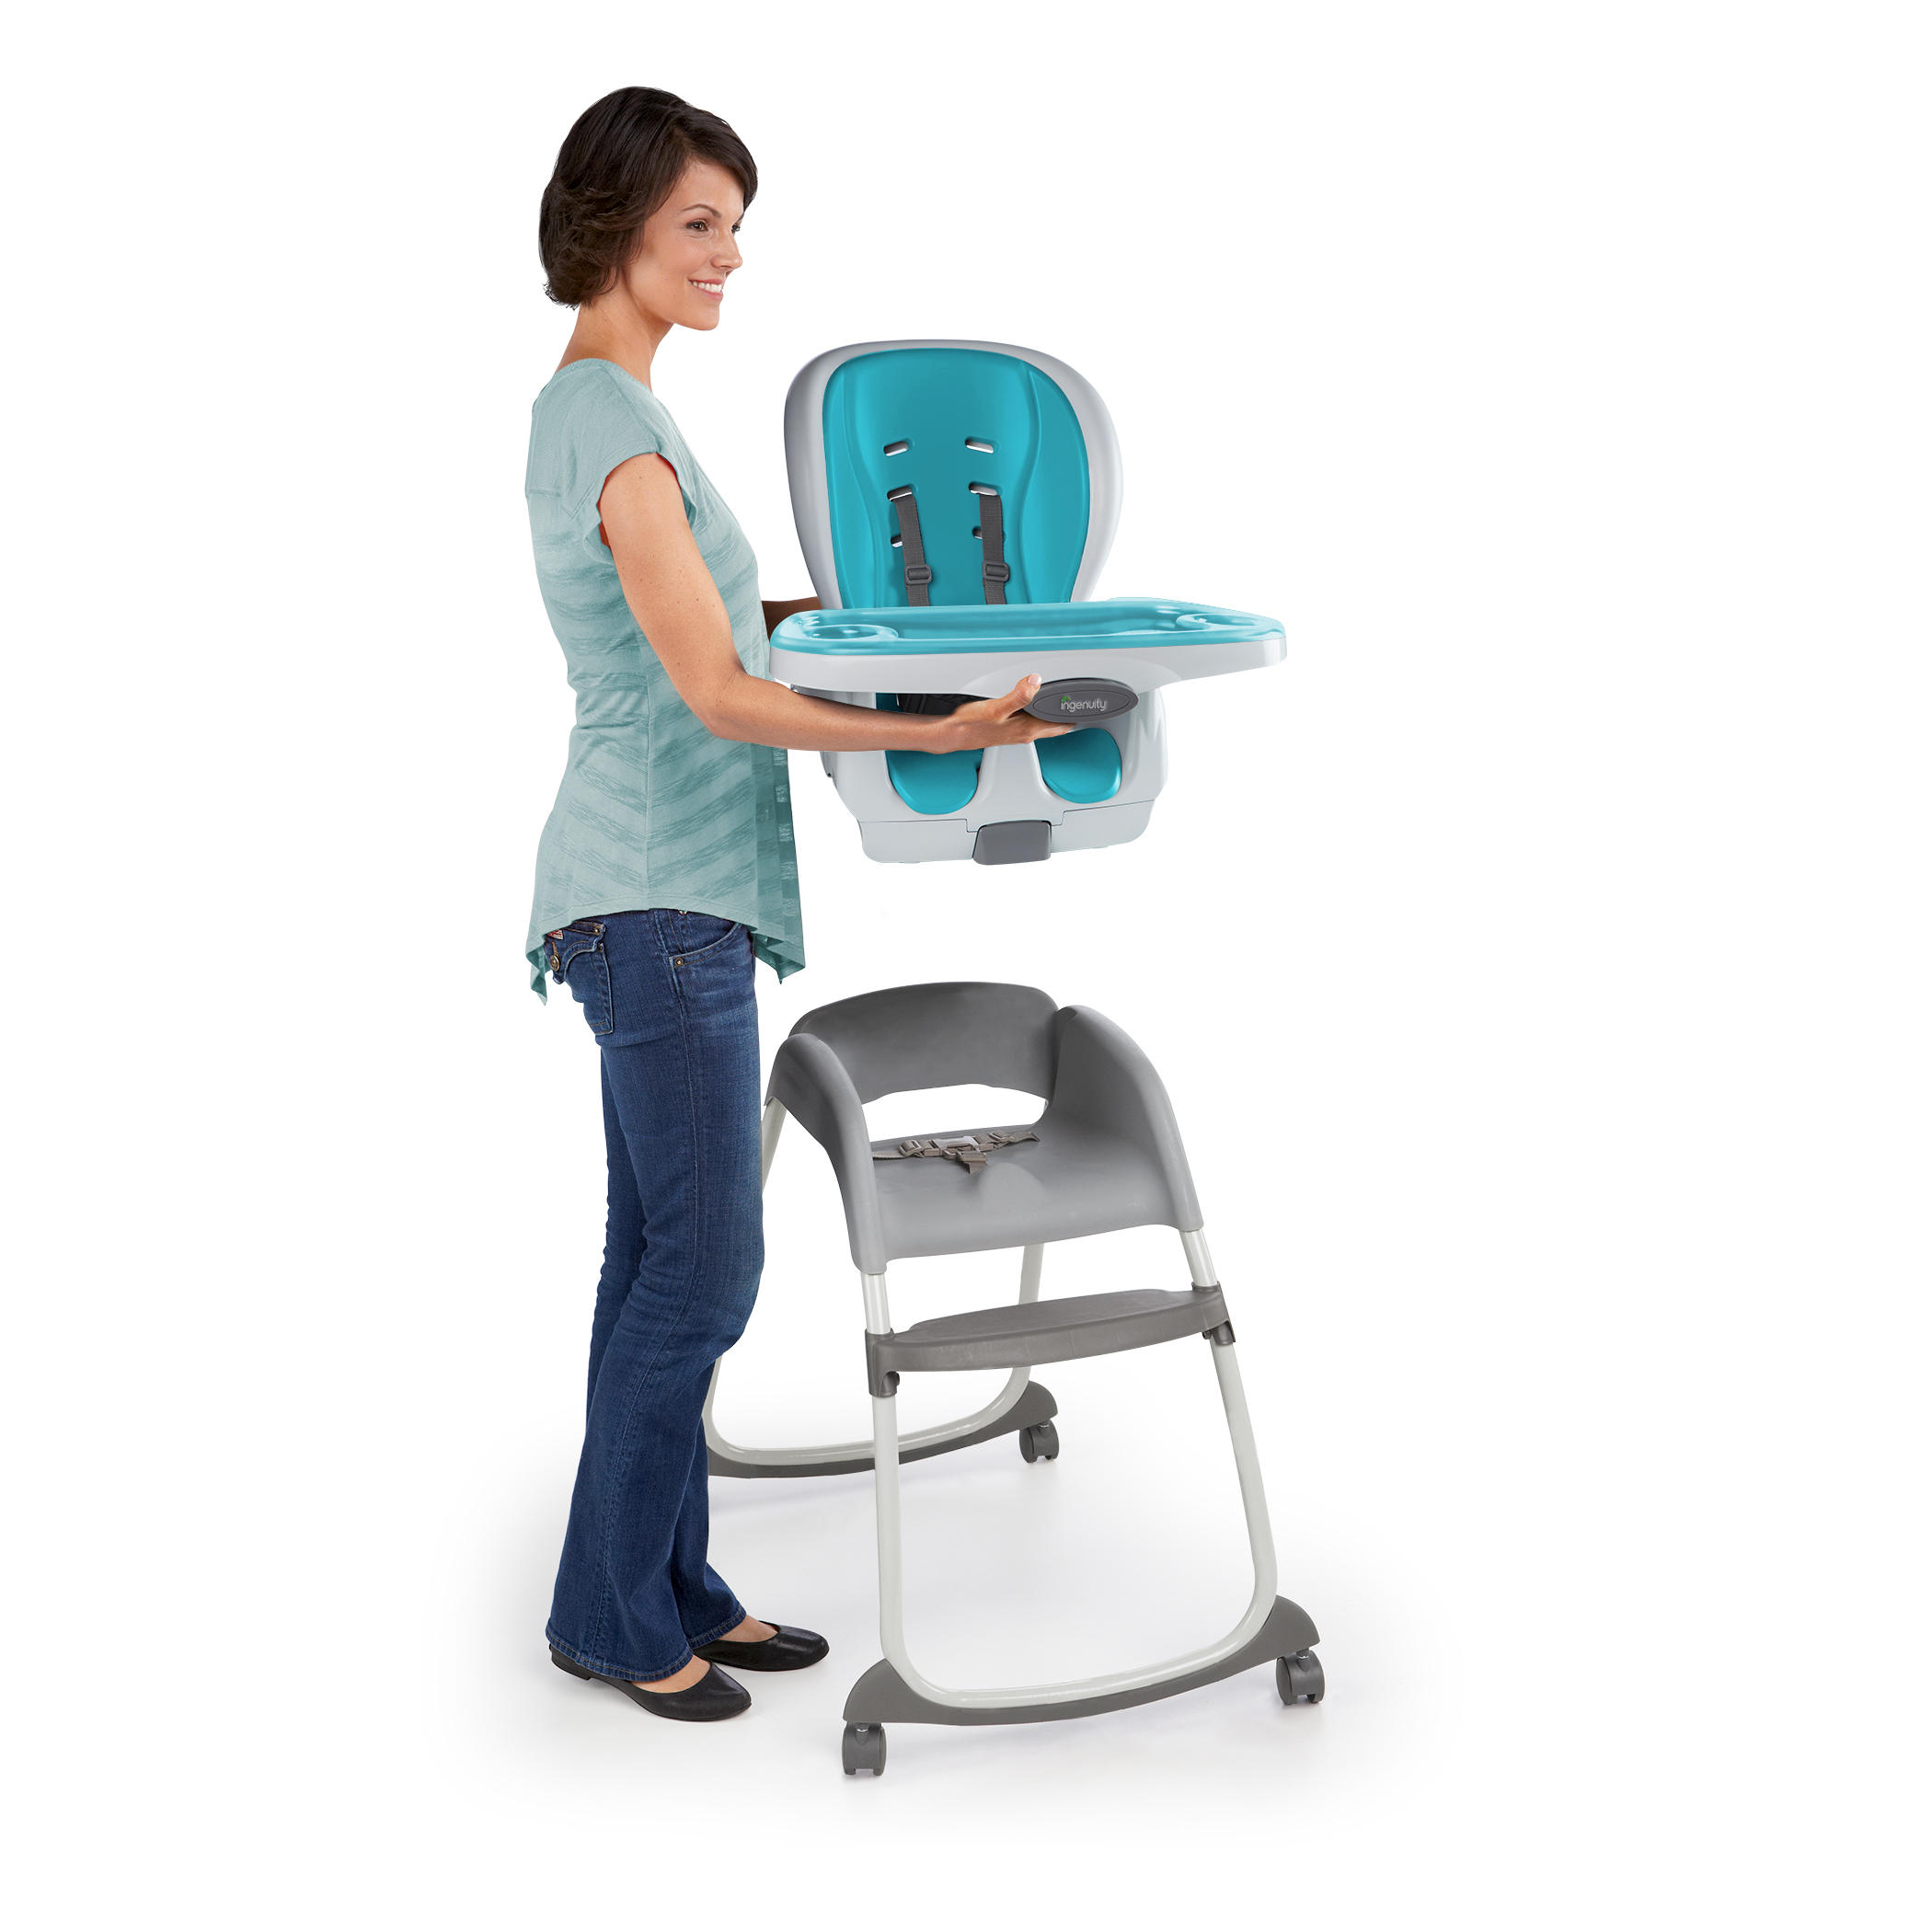 SmartClean Trio 3-in-1 High Chair - Aqua